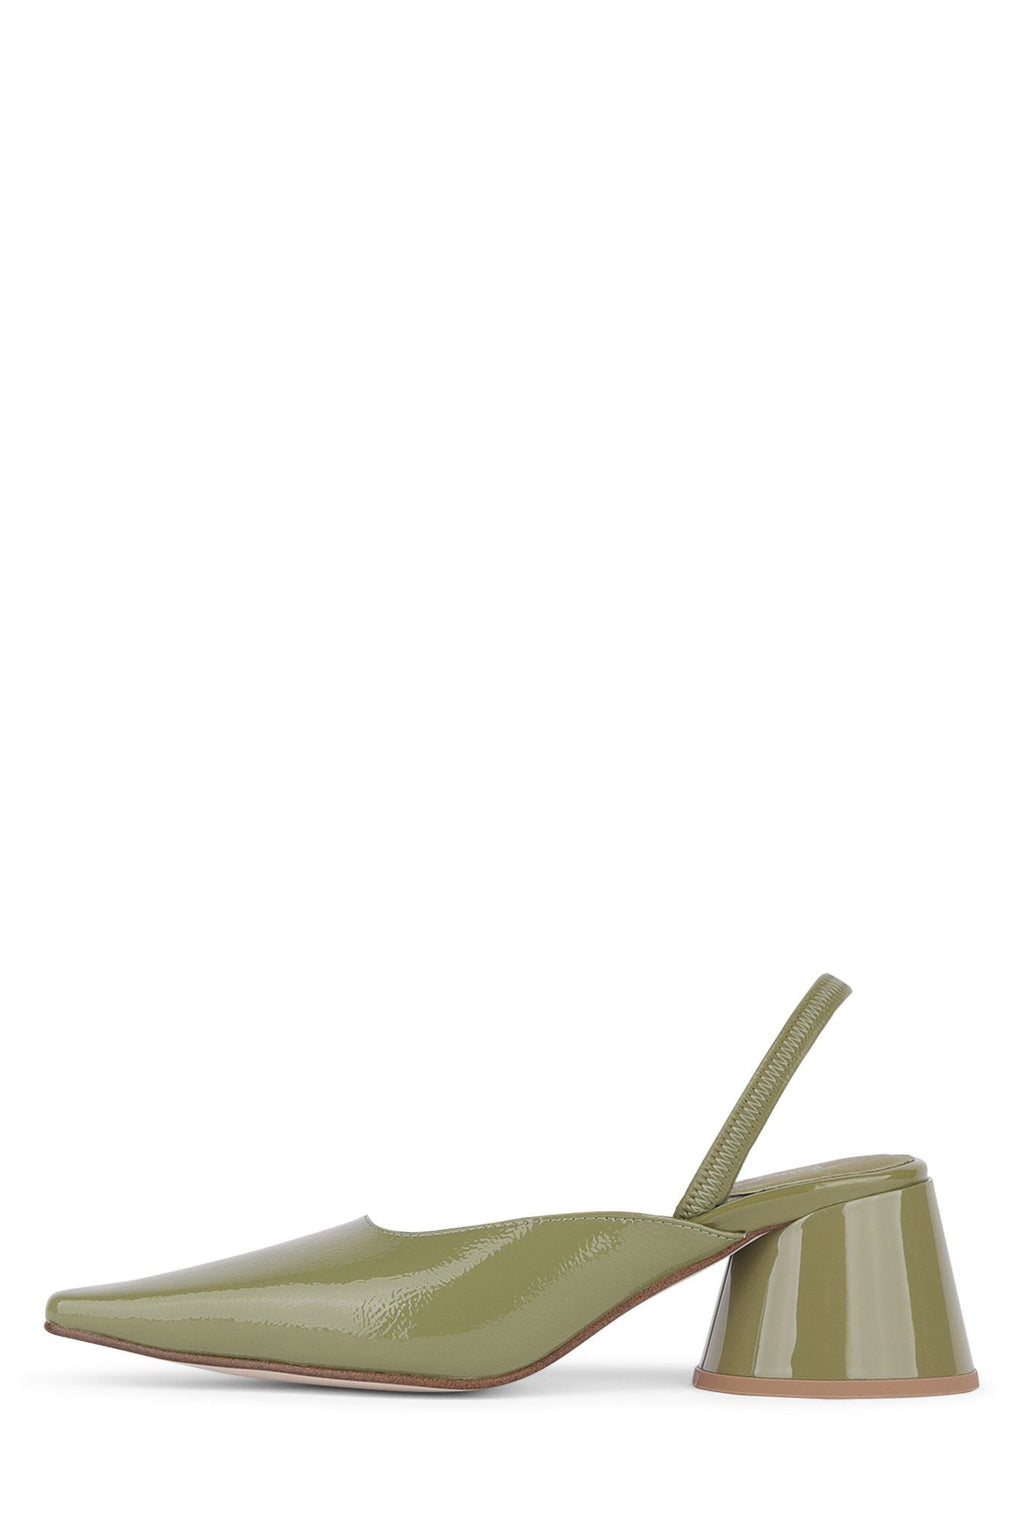 SERRA-S Heeled Mule YYH Dusty Green Patent 6